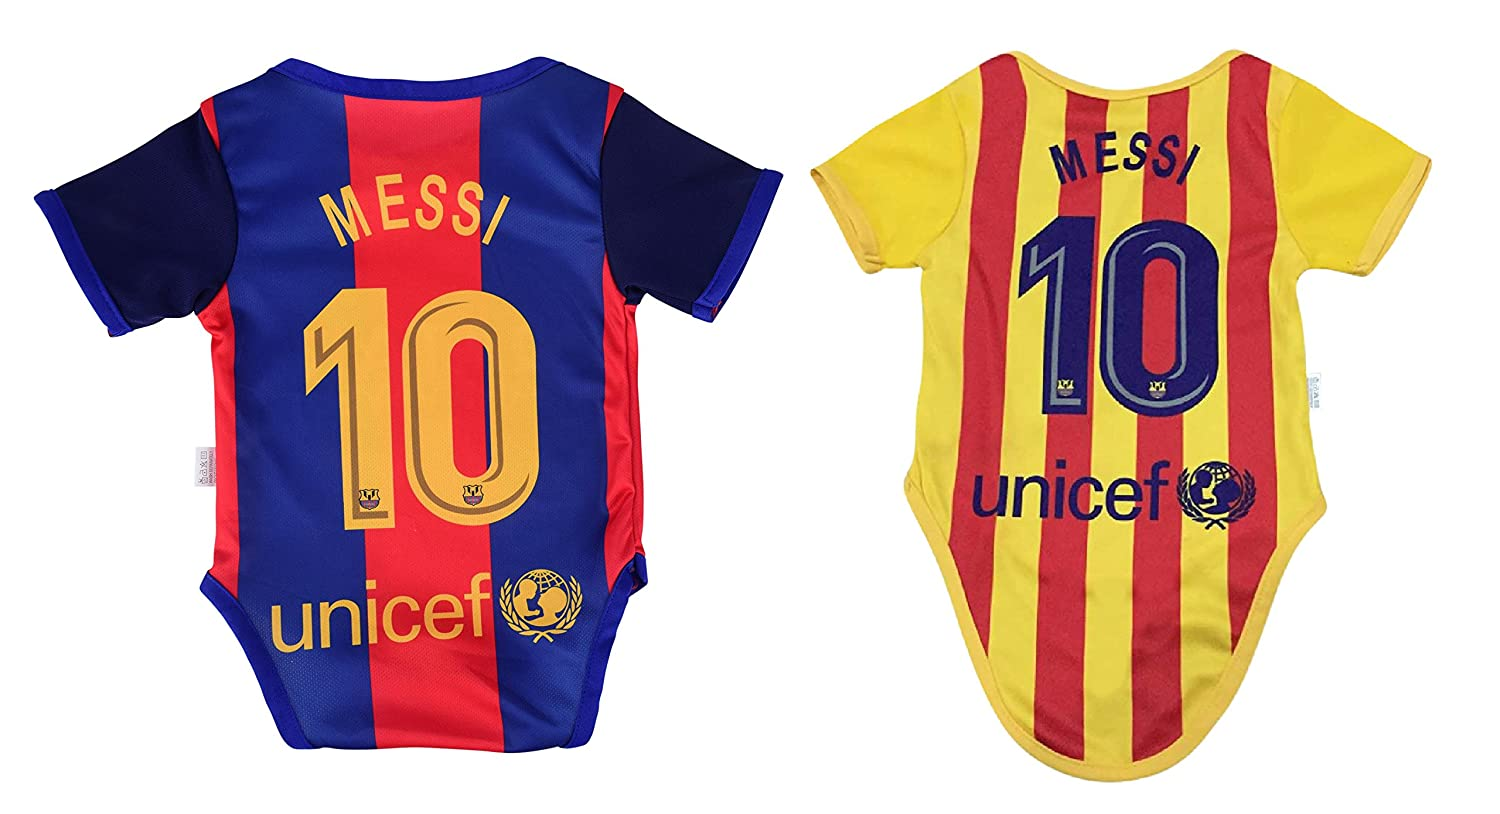 26131d5ff57 Amazon.com   Lionel Messi  10 Soccer Jersey Baby Infant   Toddler Onesies  Rompers Pack of 2 Home   Away Jersey Design Bundle   Sports   Outdoors